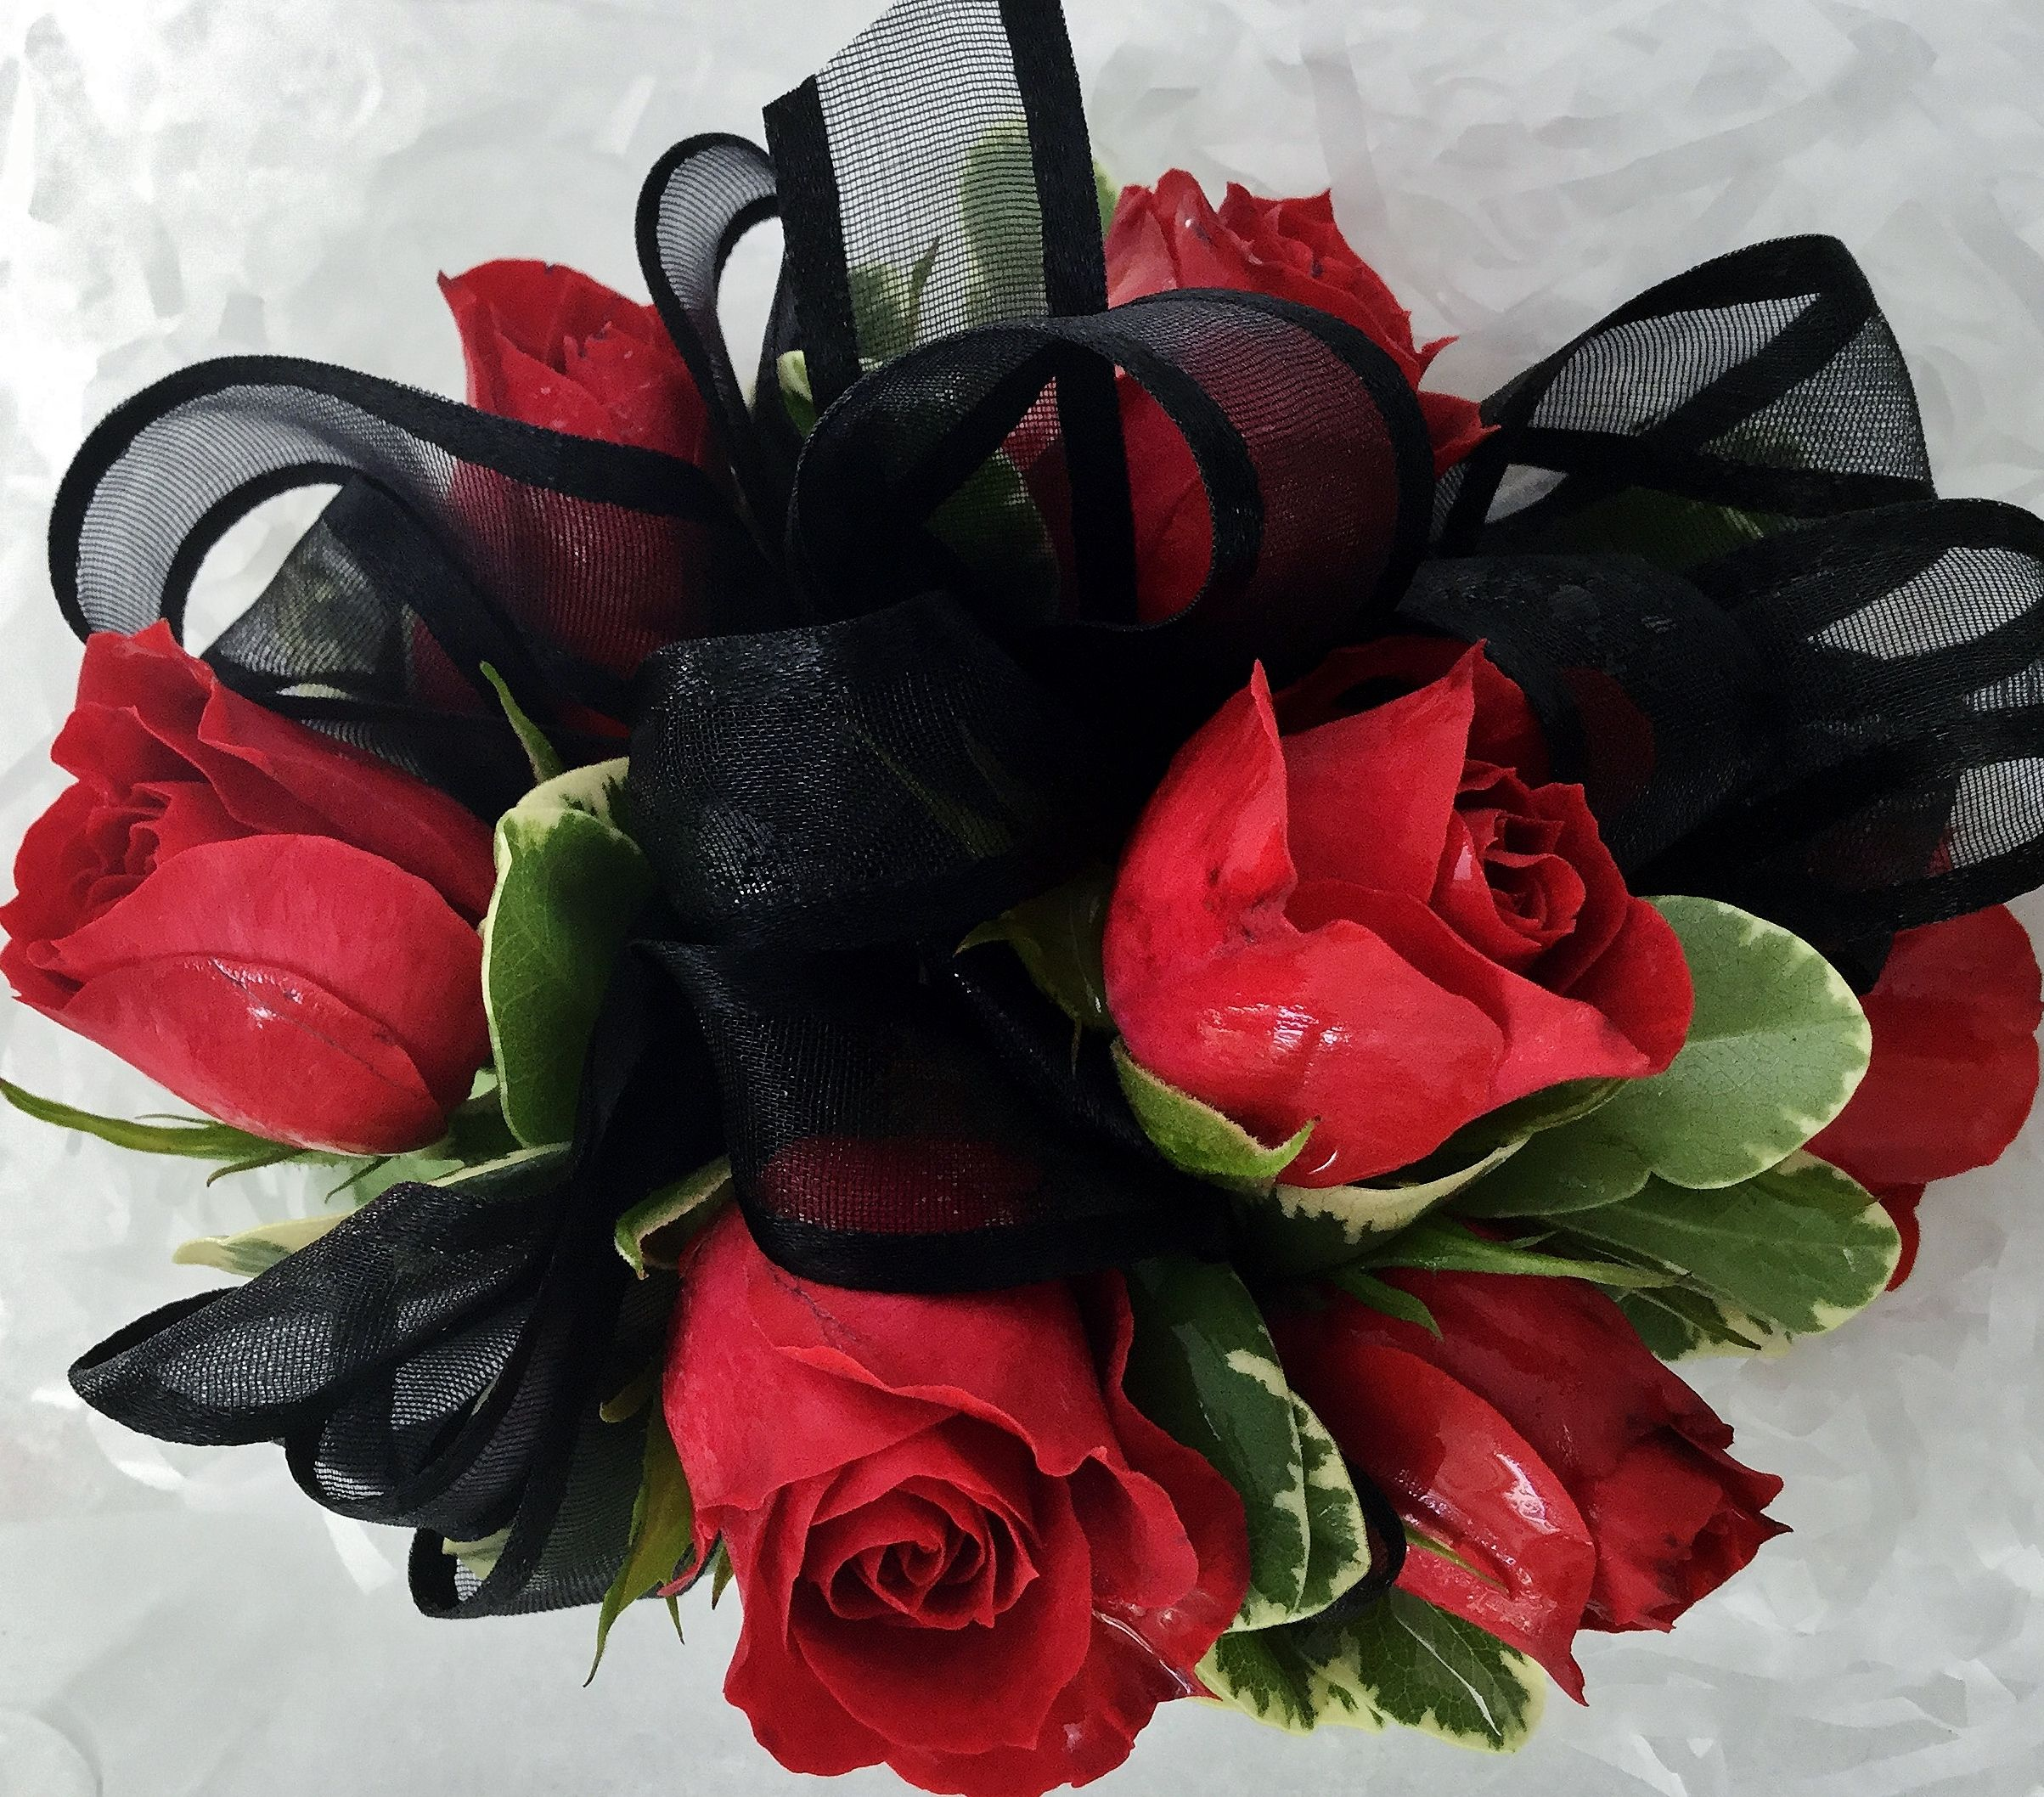 A Beautiful Corsage Made Of Red Sweetheart Roses With A Black Ribbon